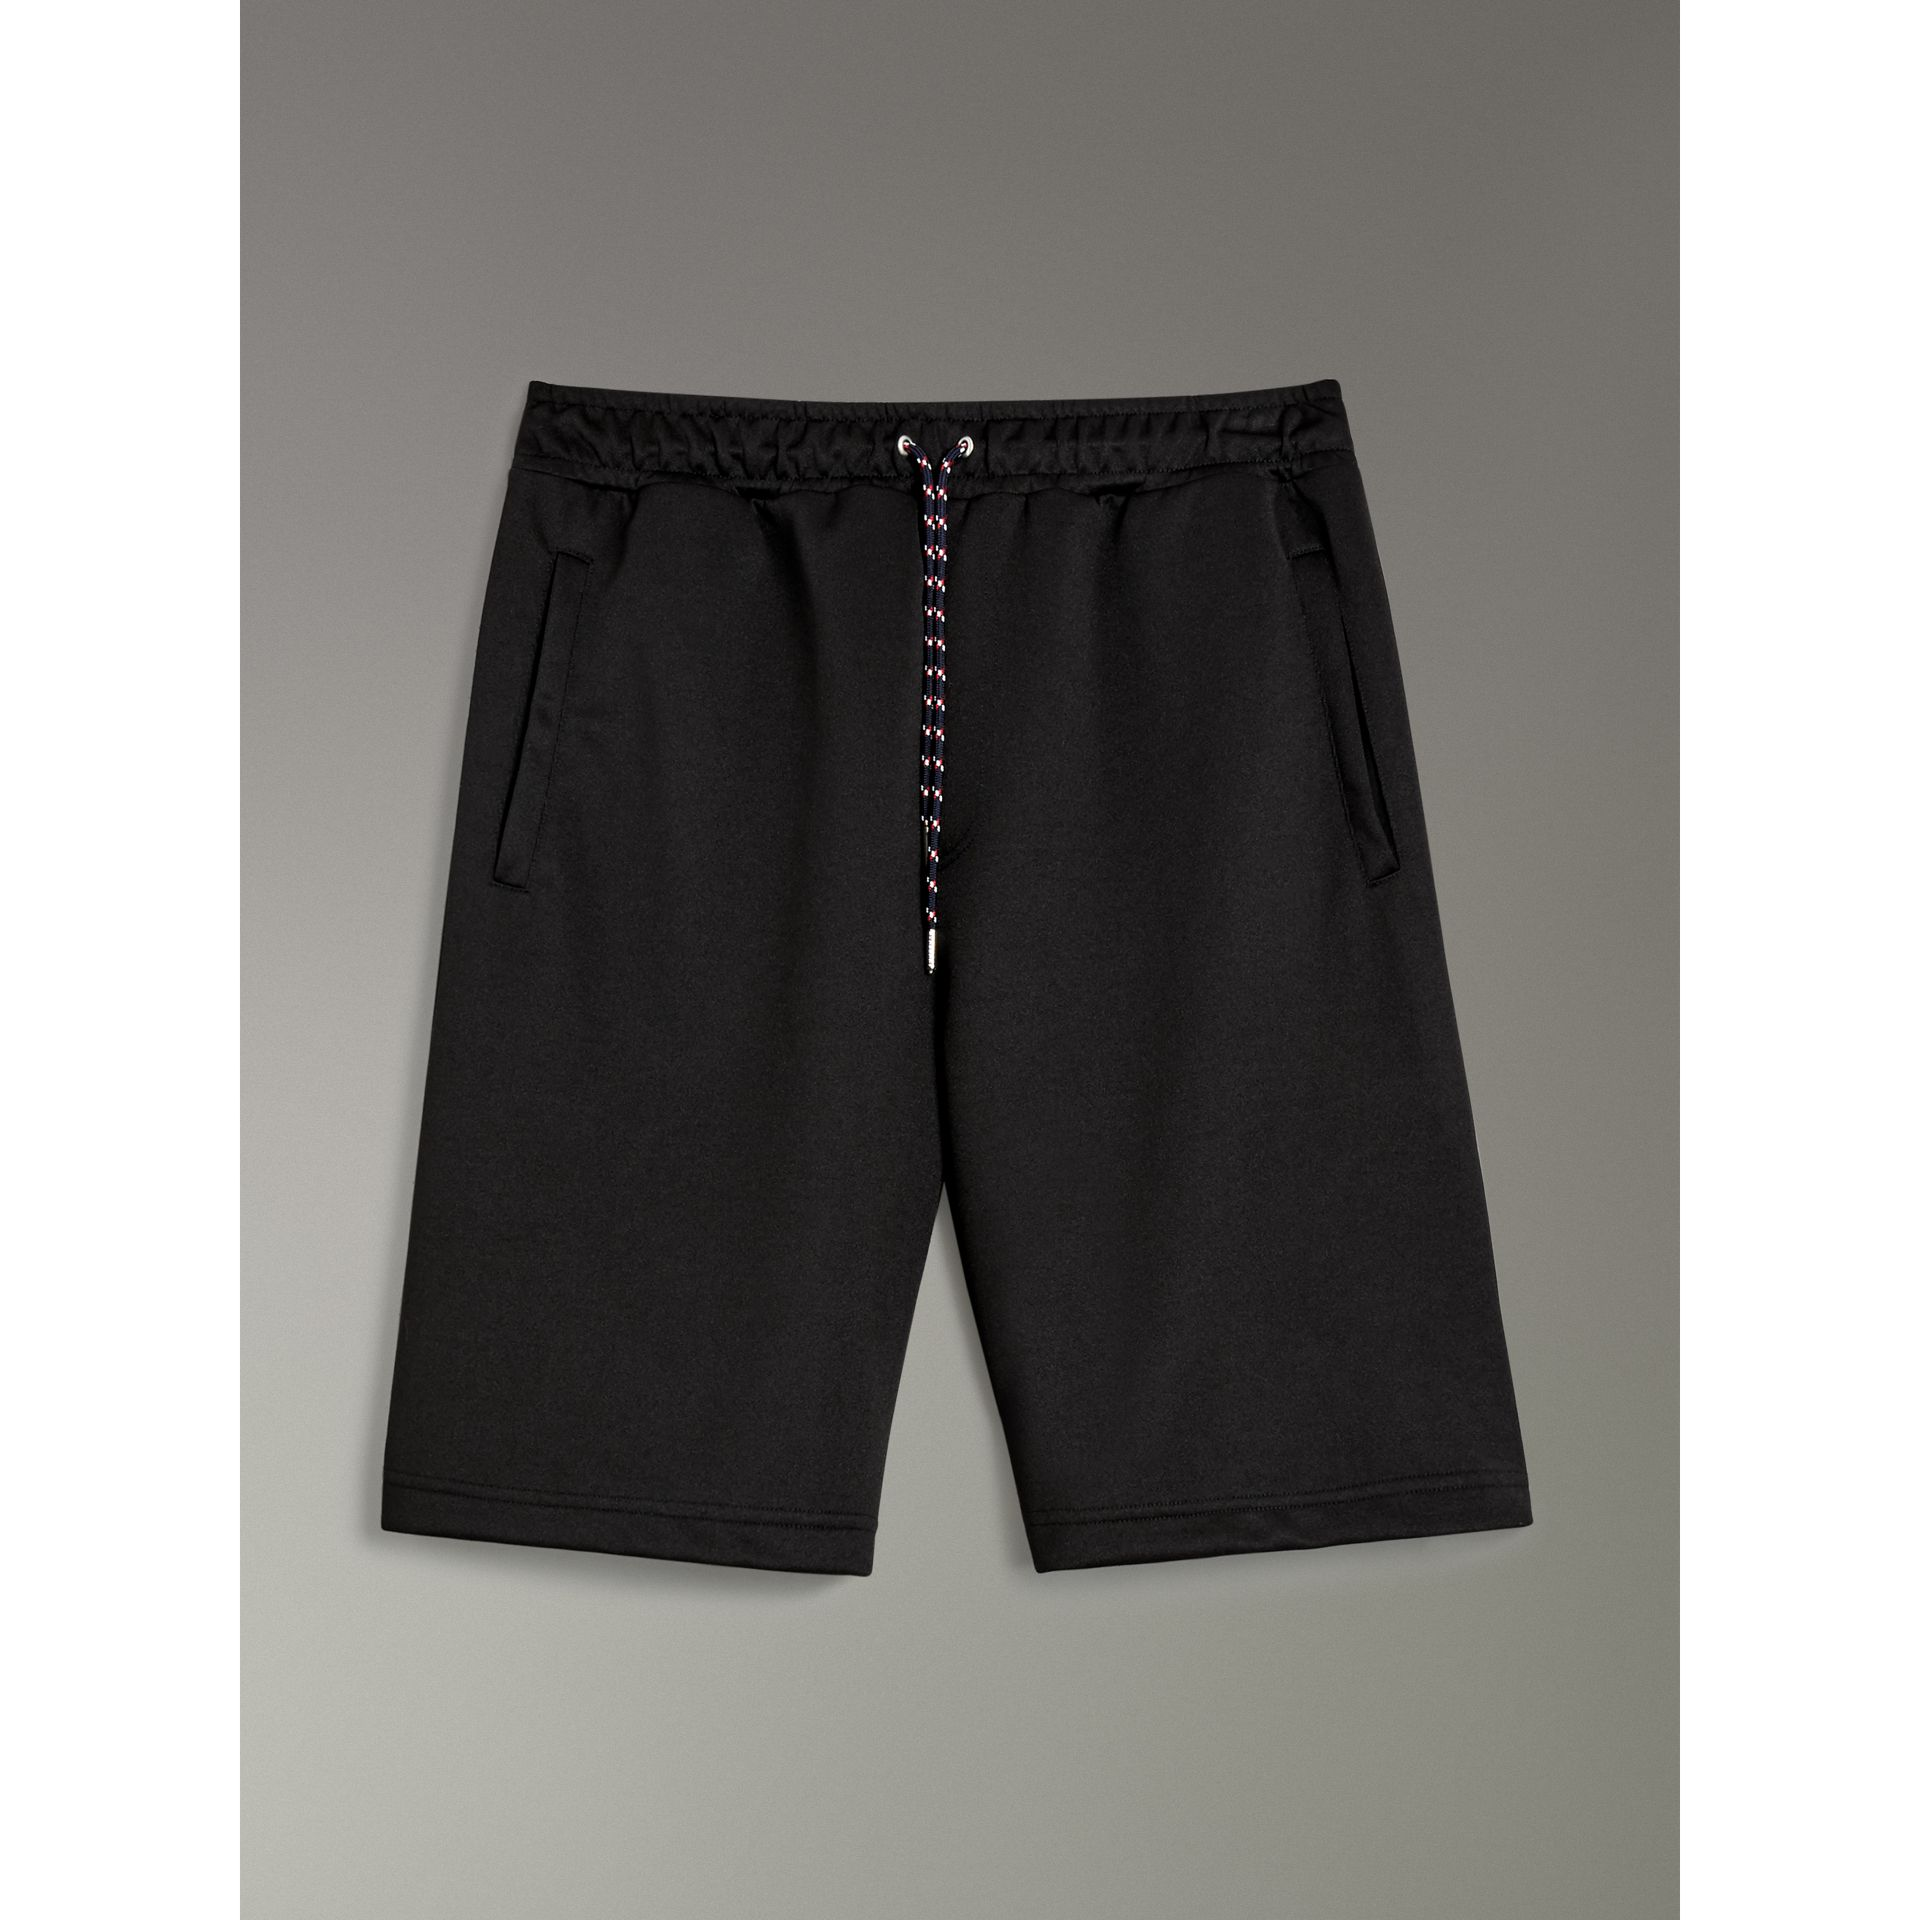 Cotton Blend Drawcord Shorts in Black - Men | Burberry Australia - gallery image 3